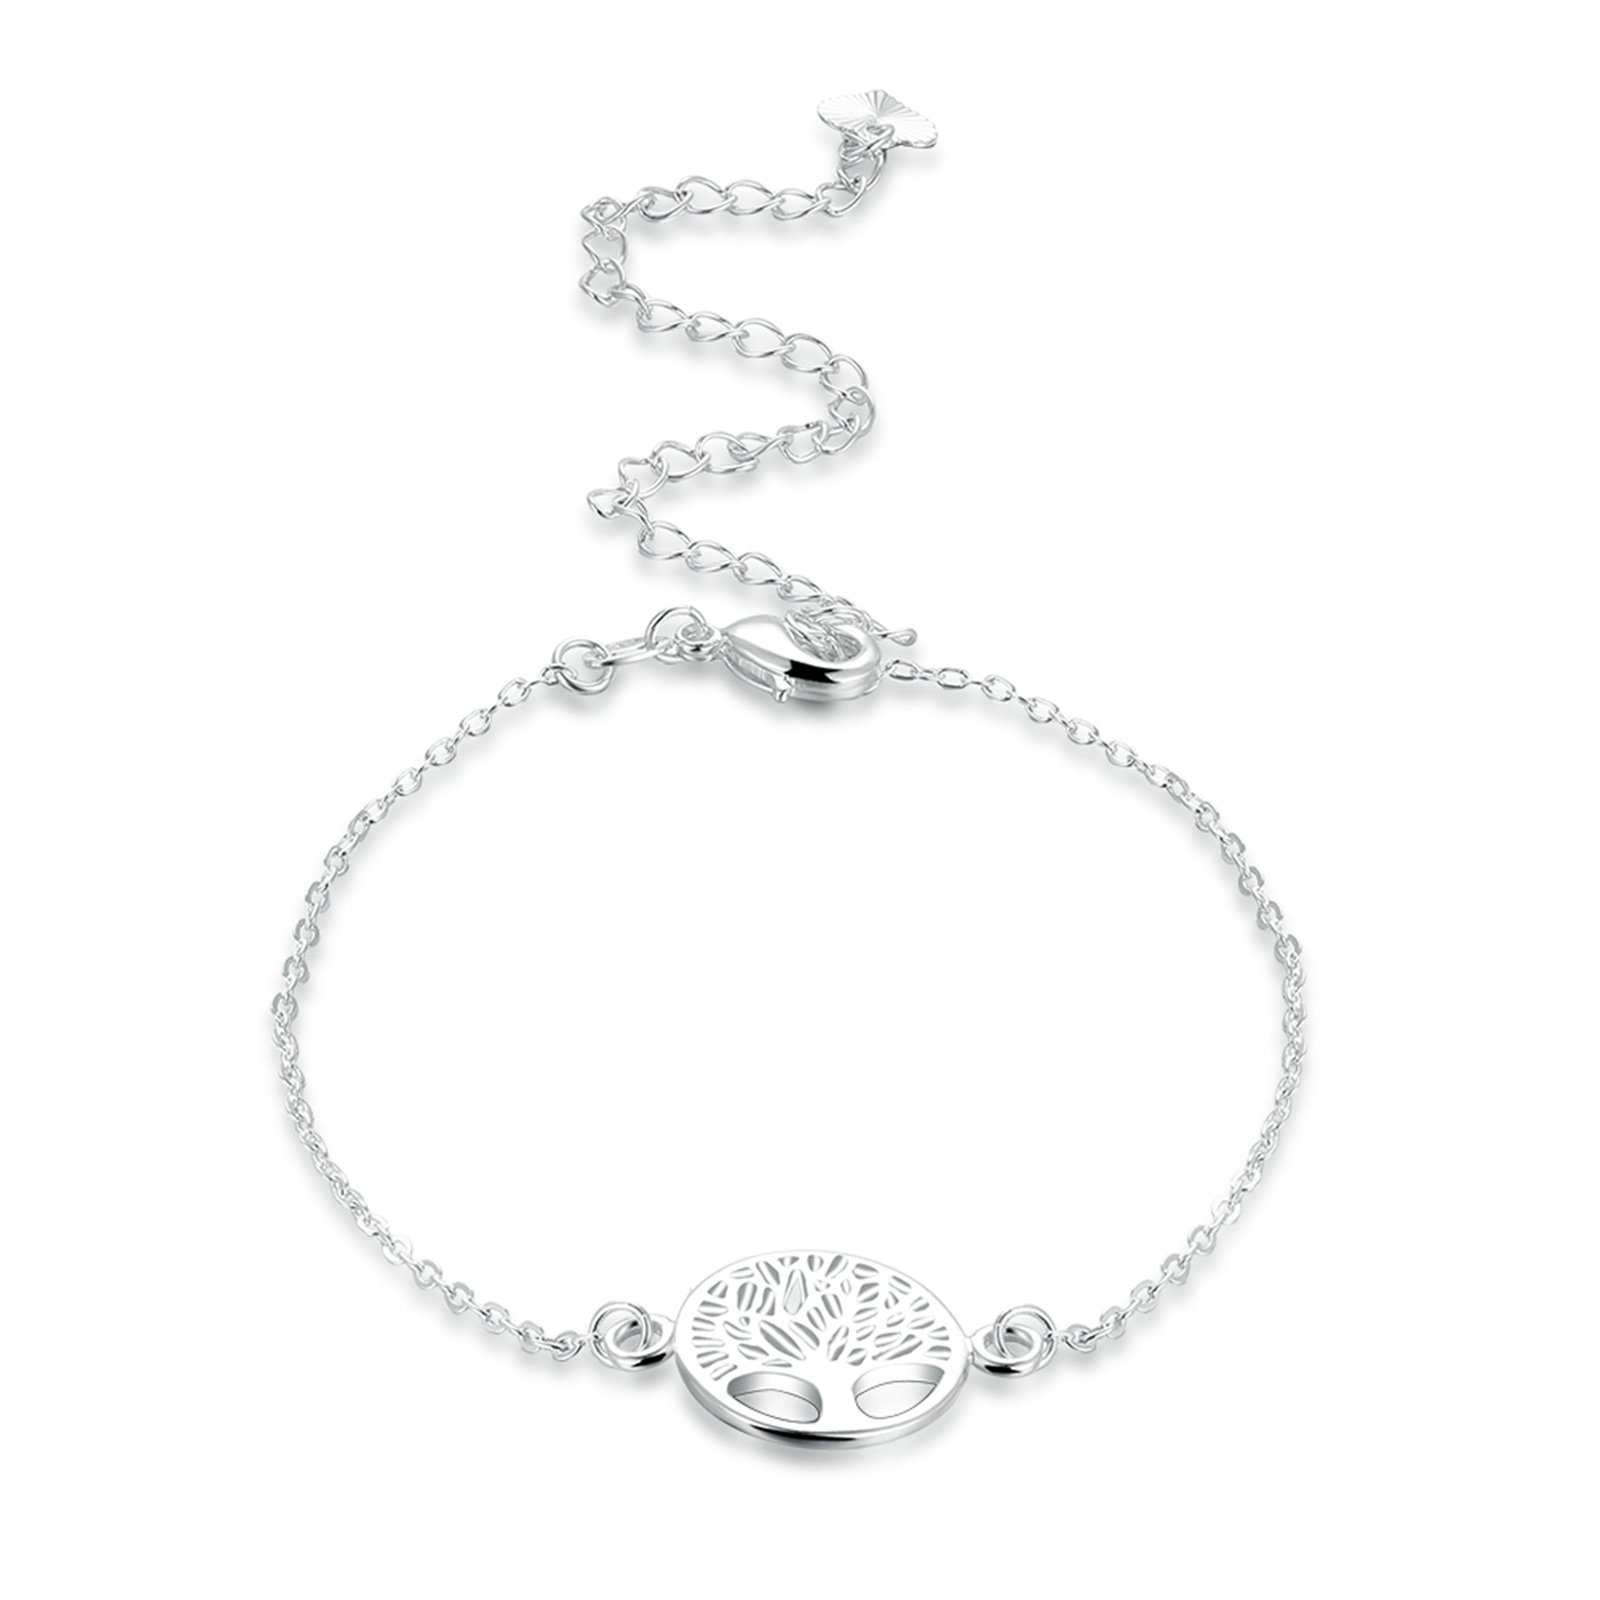 Adisaer Silver Plated Anklet Bracelet 20+10CM Rolo Chain Tree of Life Pendant Women Beach Foot Jewelry